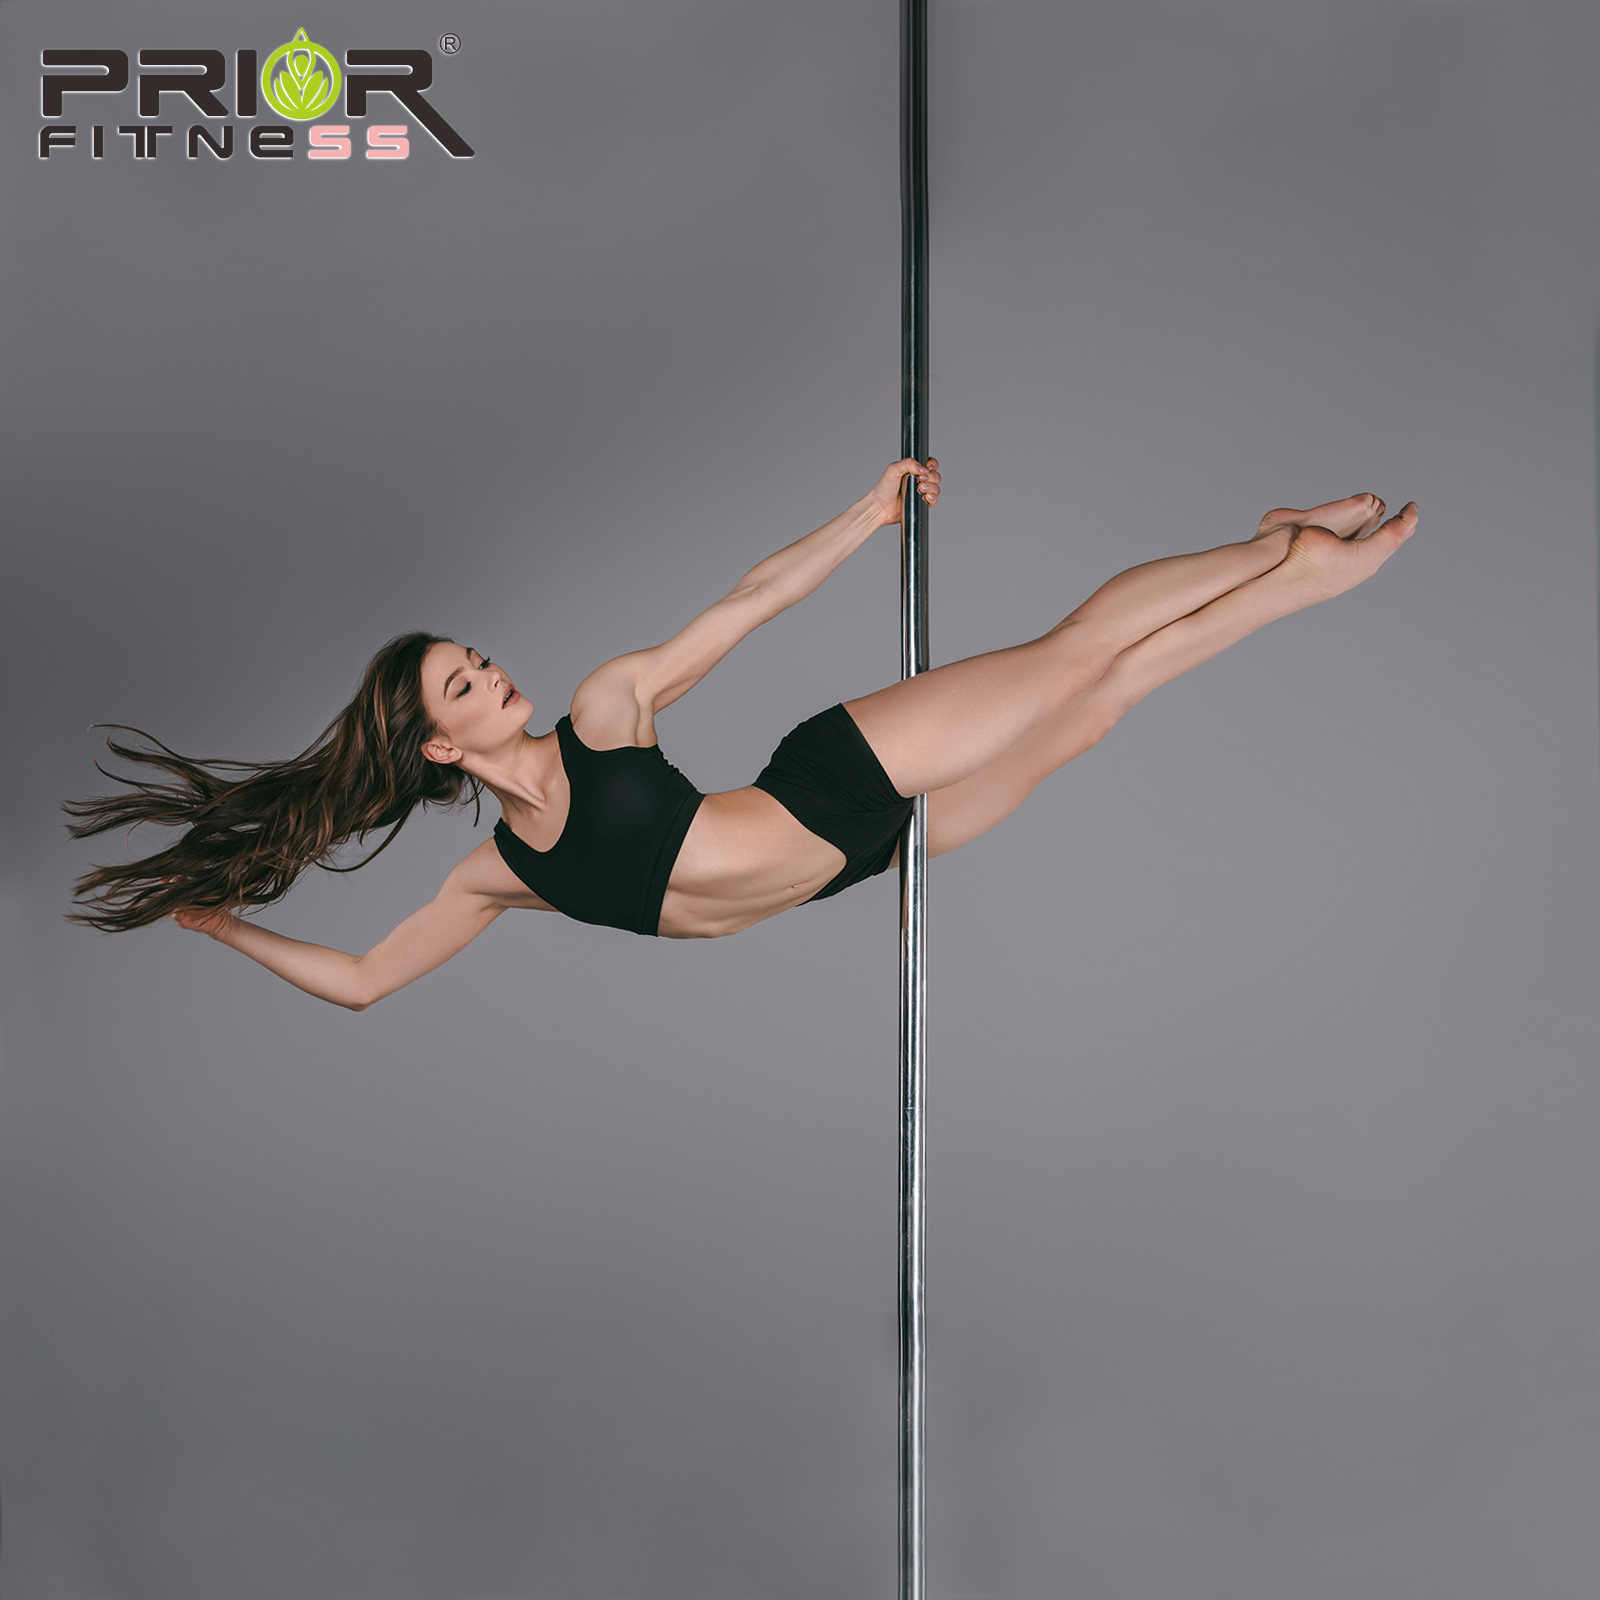 Professional Pole Dance Golden 360 Stripper Spin Removable Home Fitness Exercise